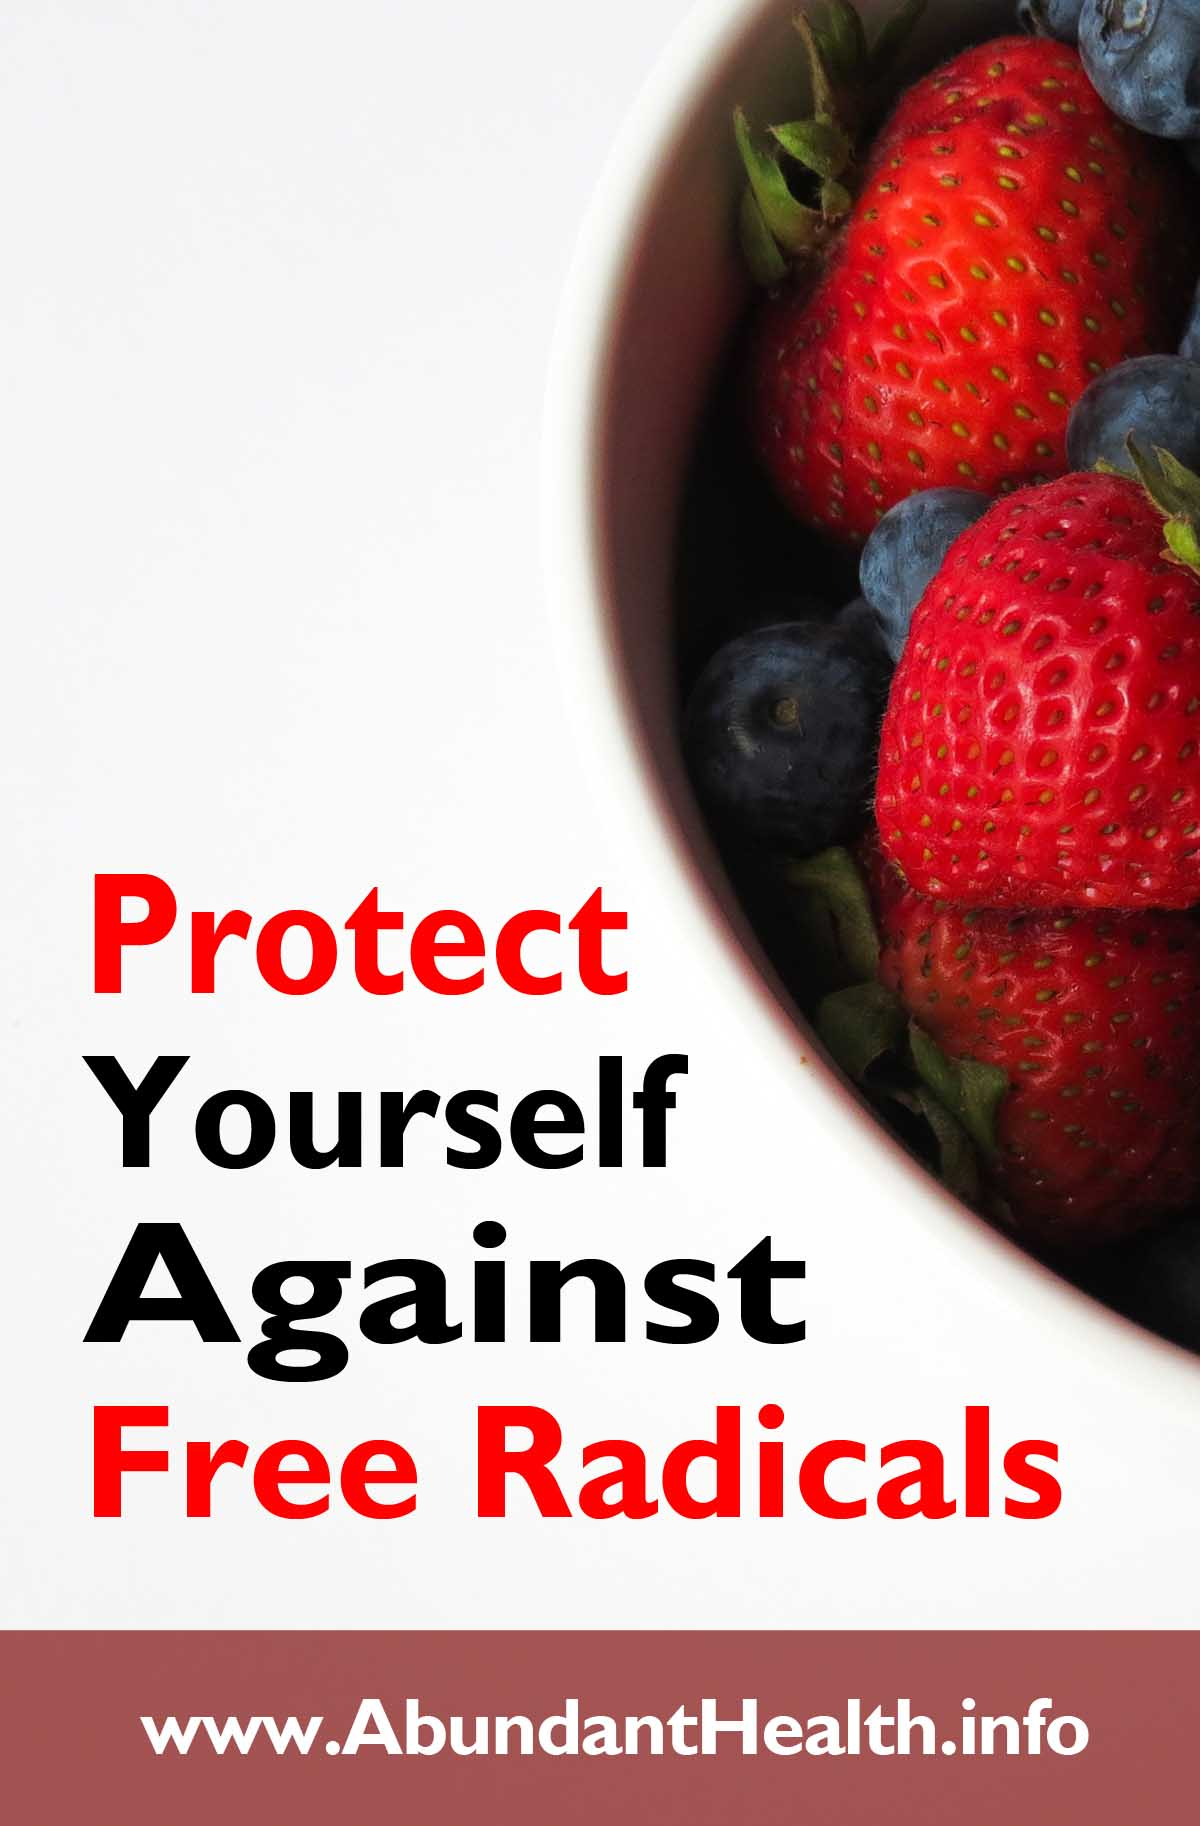 Protect Yourself Against Free Radicals